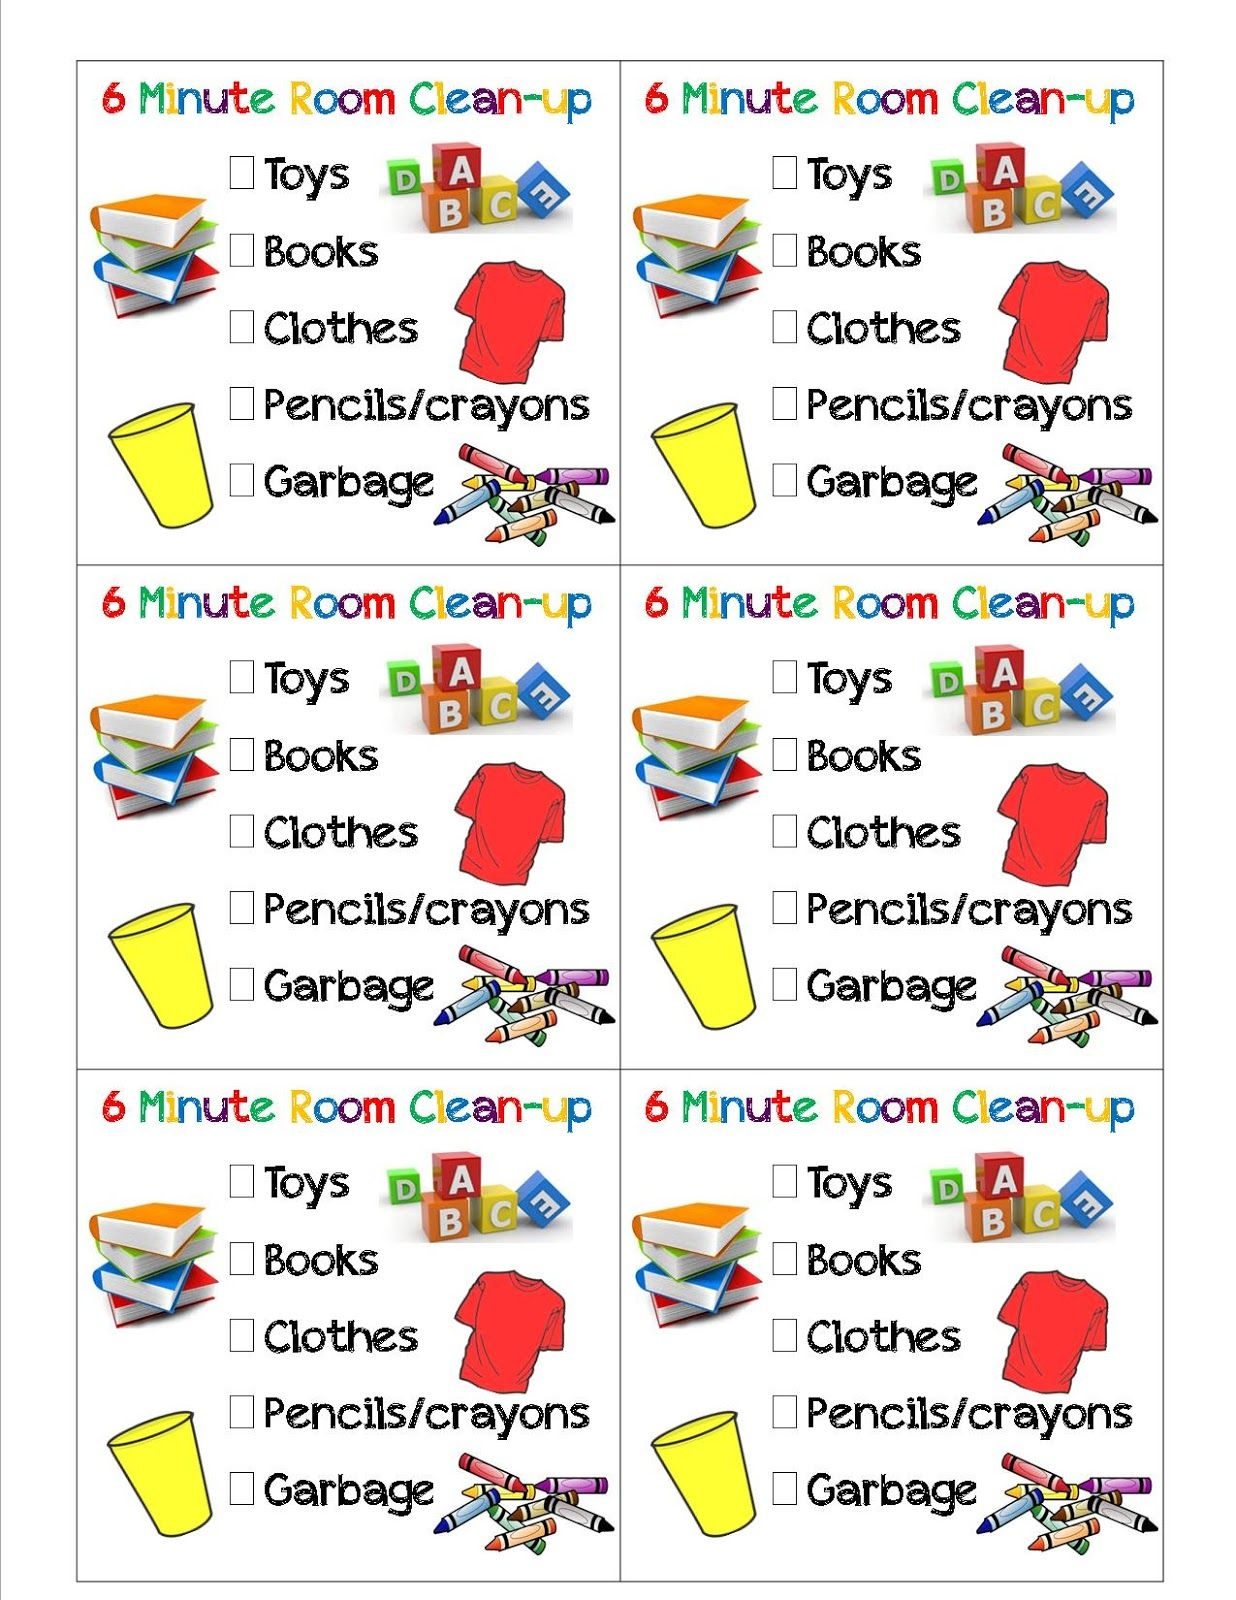 Clean your room clip art kids clean room clip art the 6 for Daily photo ideas